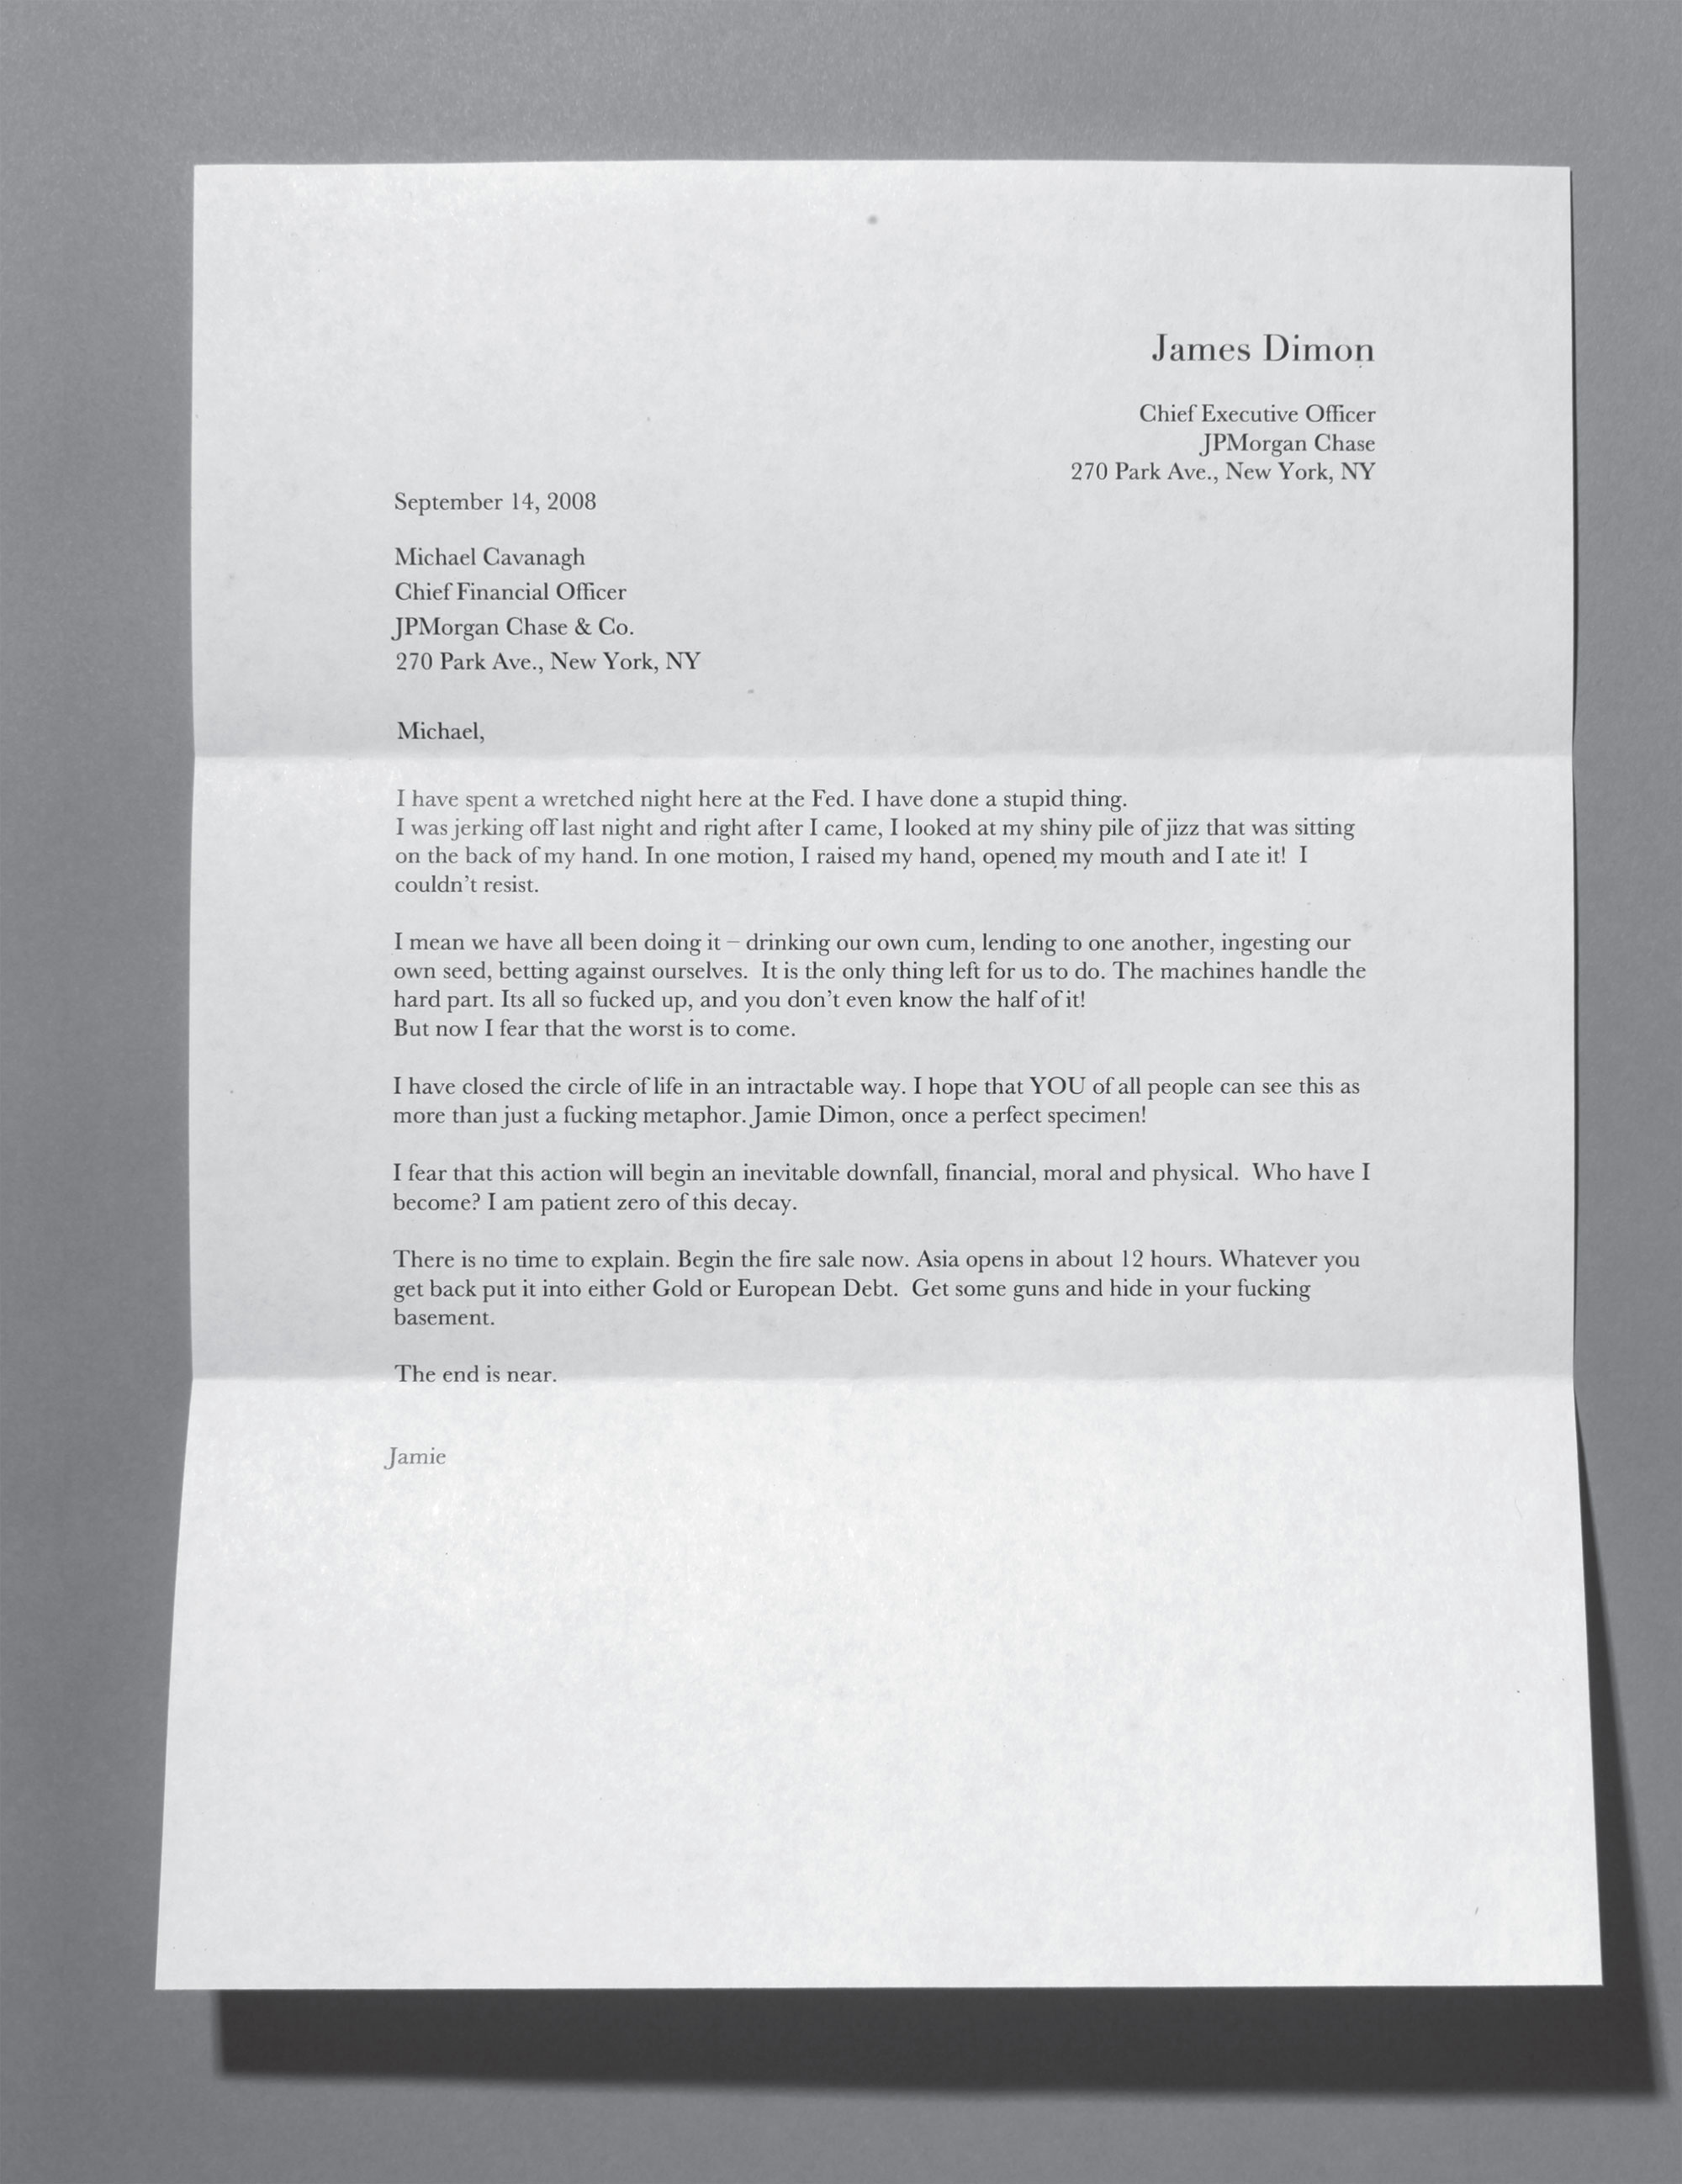 Letter to Michael Cavanagh